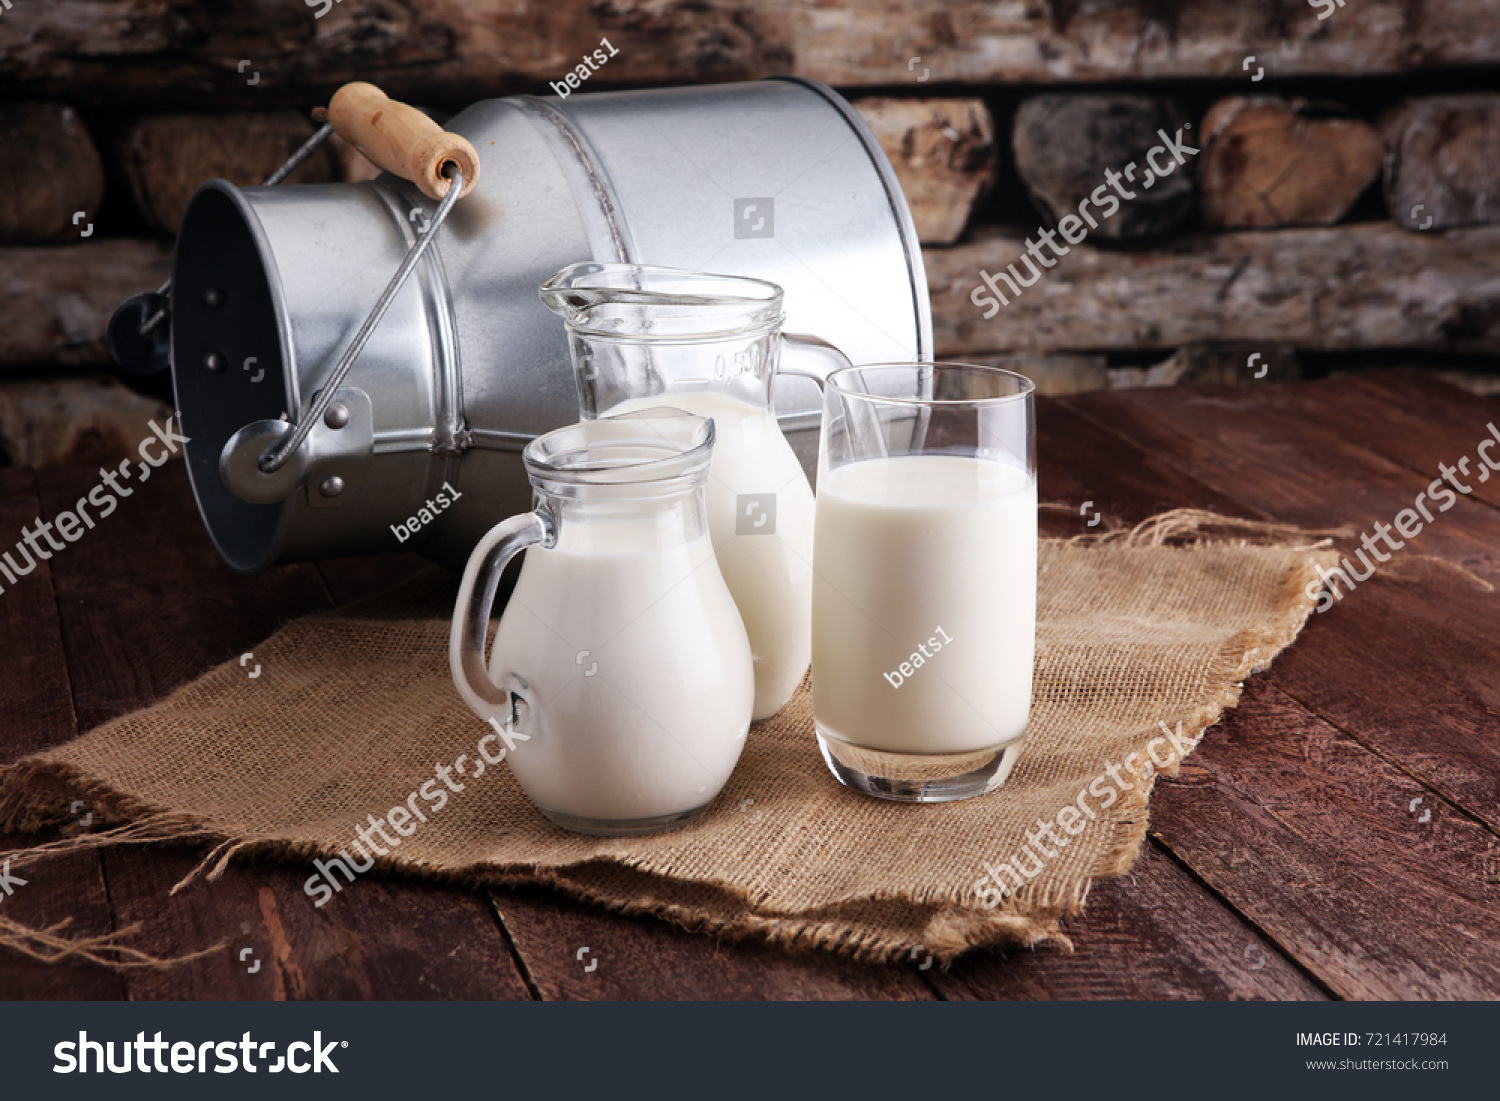 A jug of milk and glass of milk on a wooden table #721417984